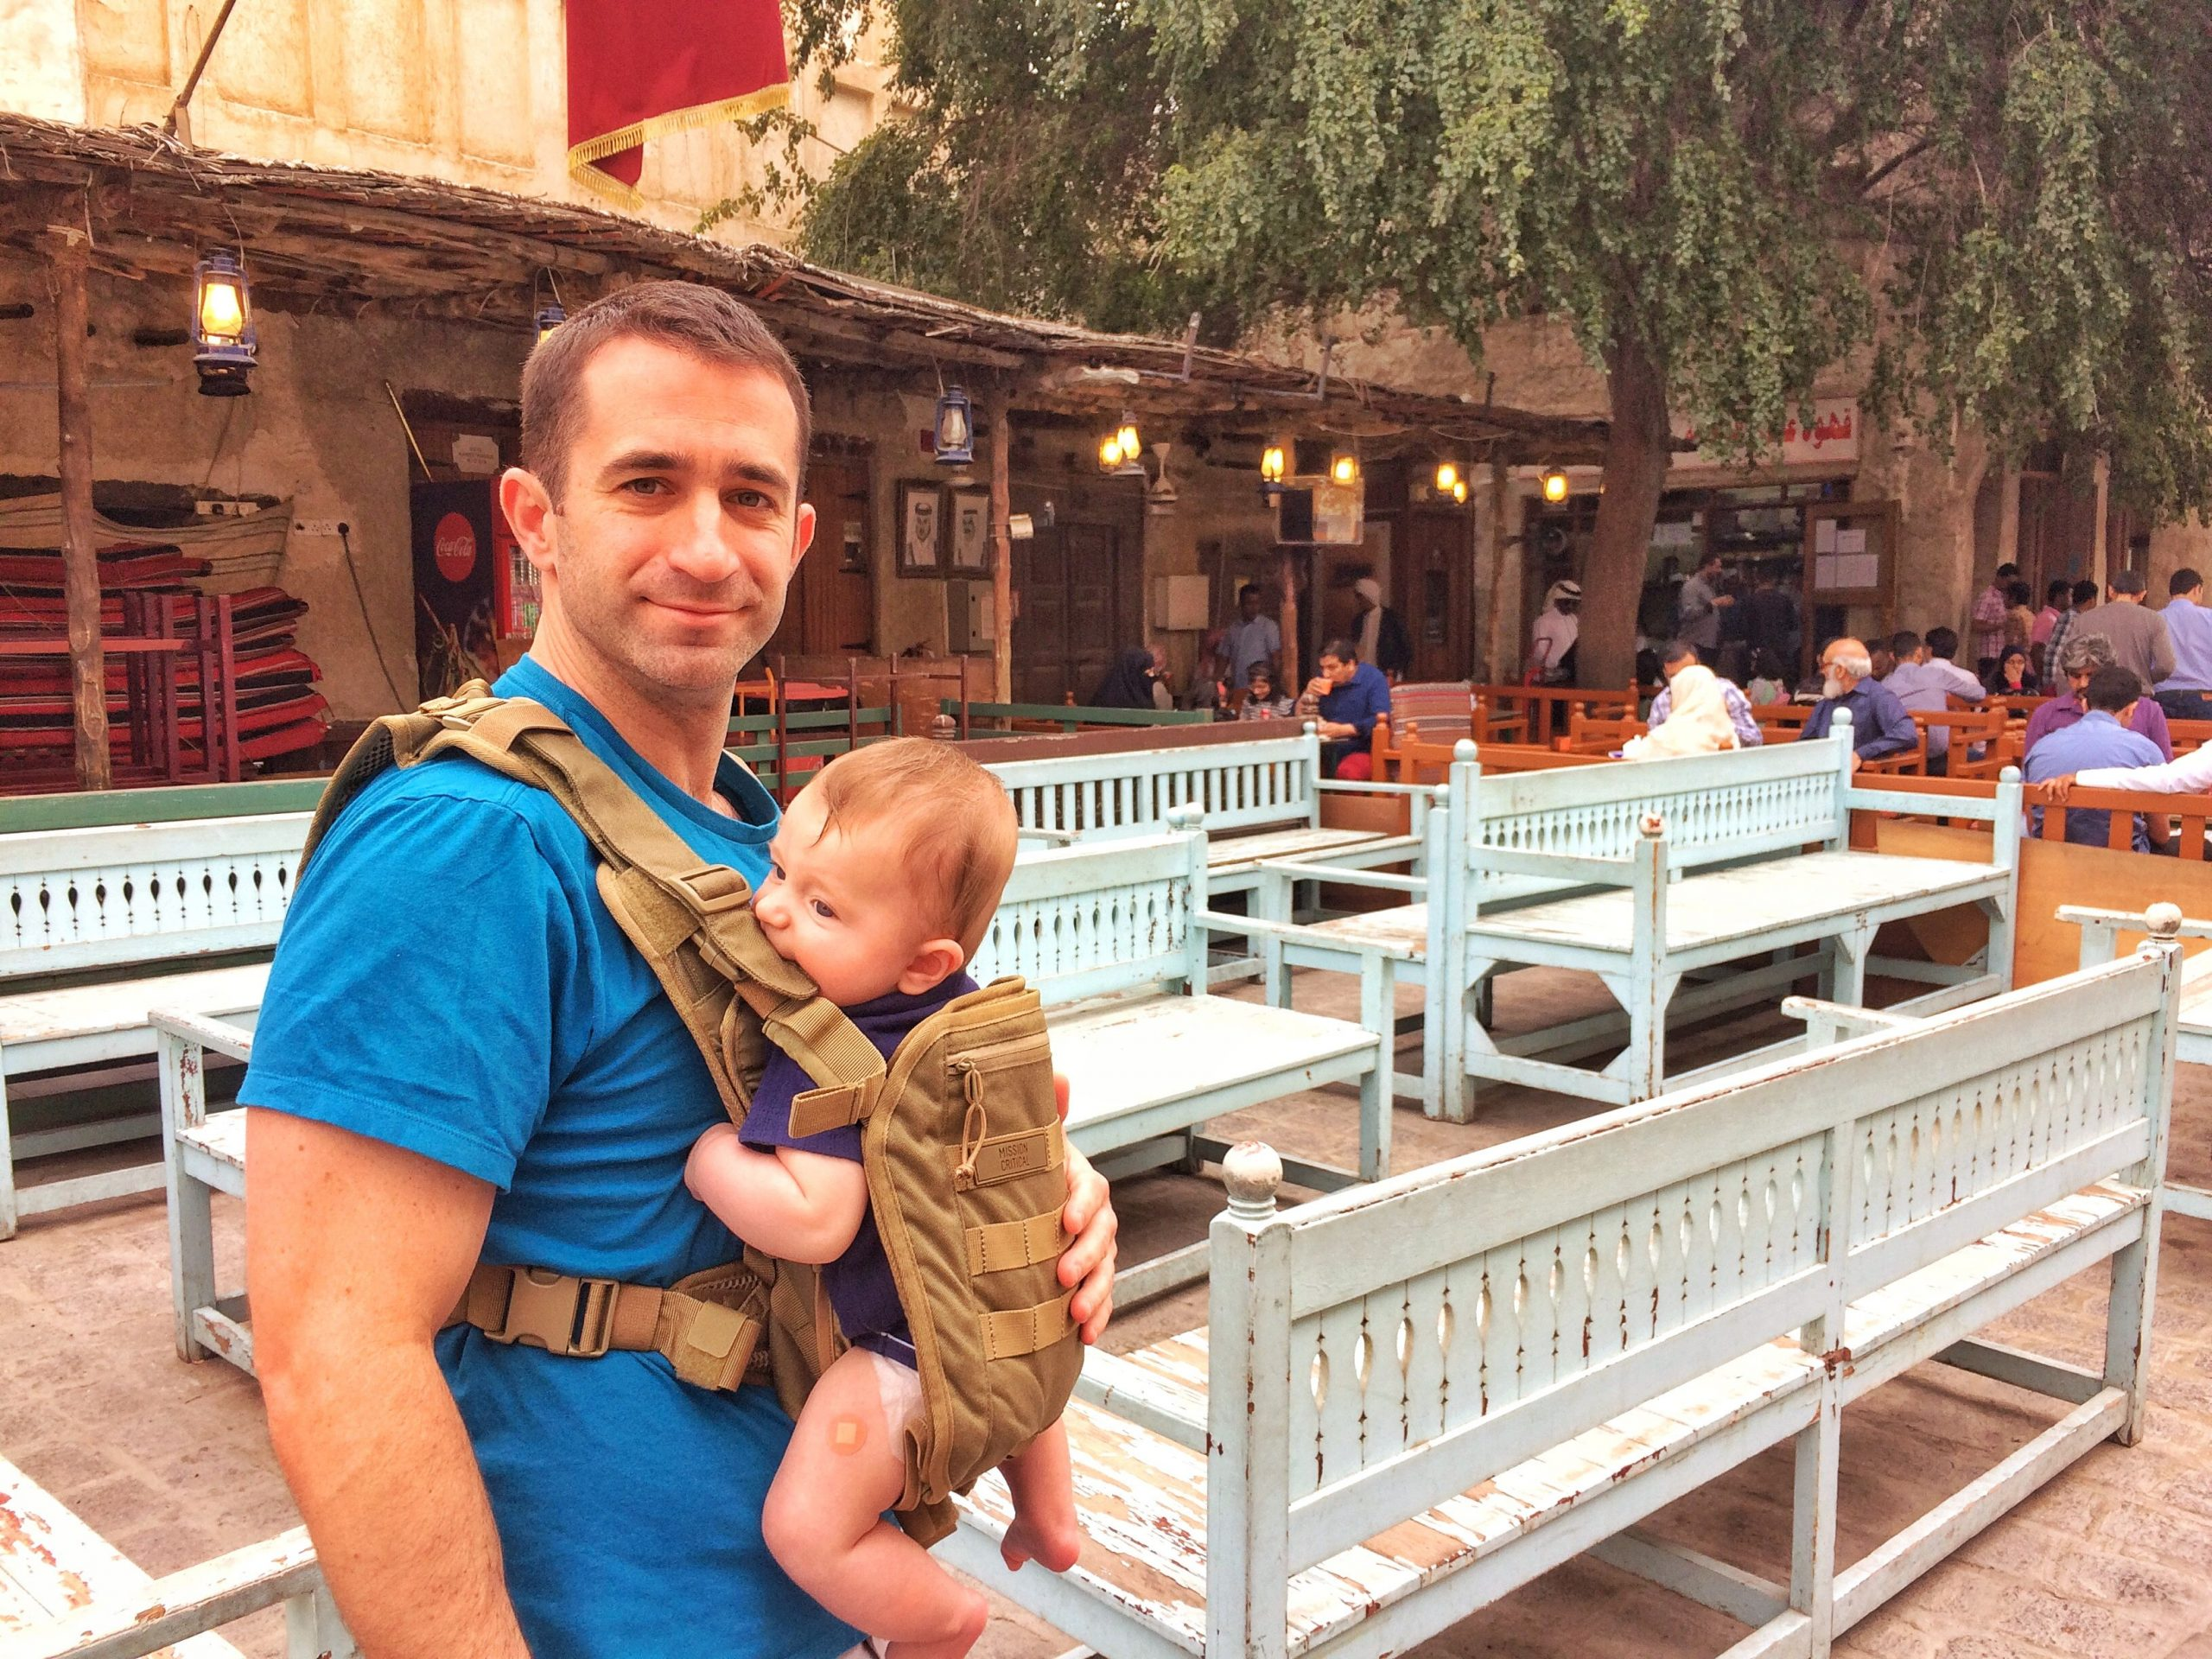 Souq Waqif in Doha, Qatar with a baby